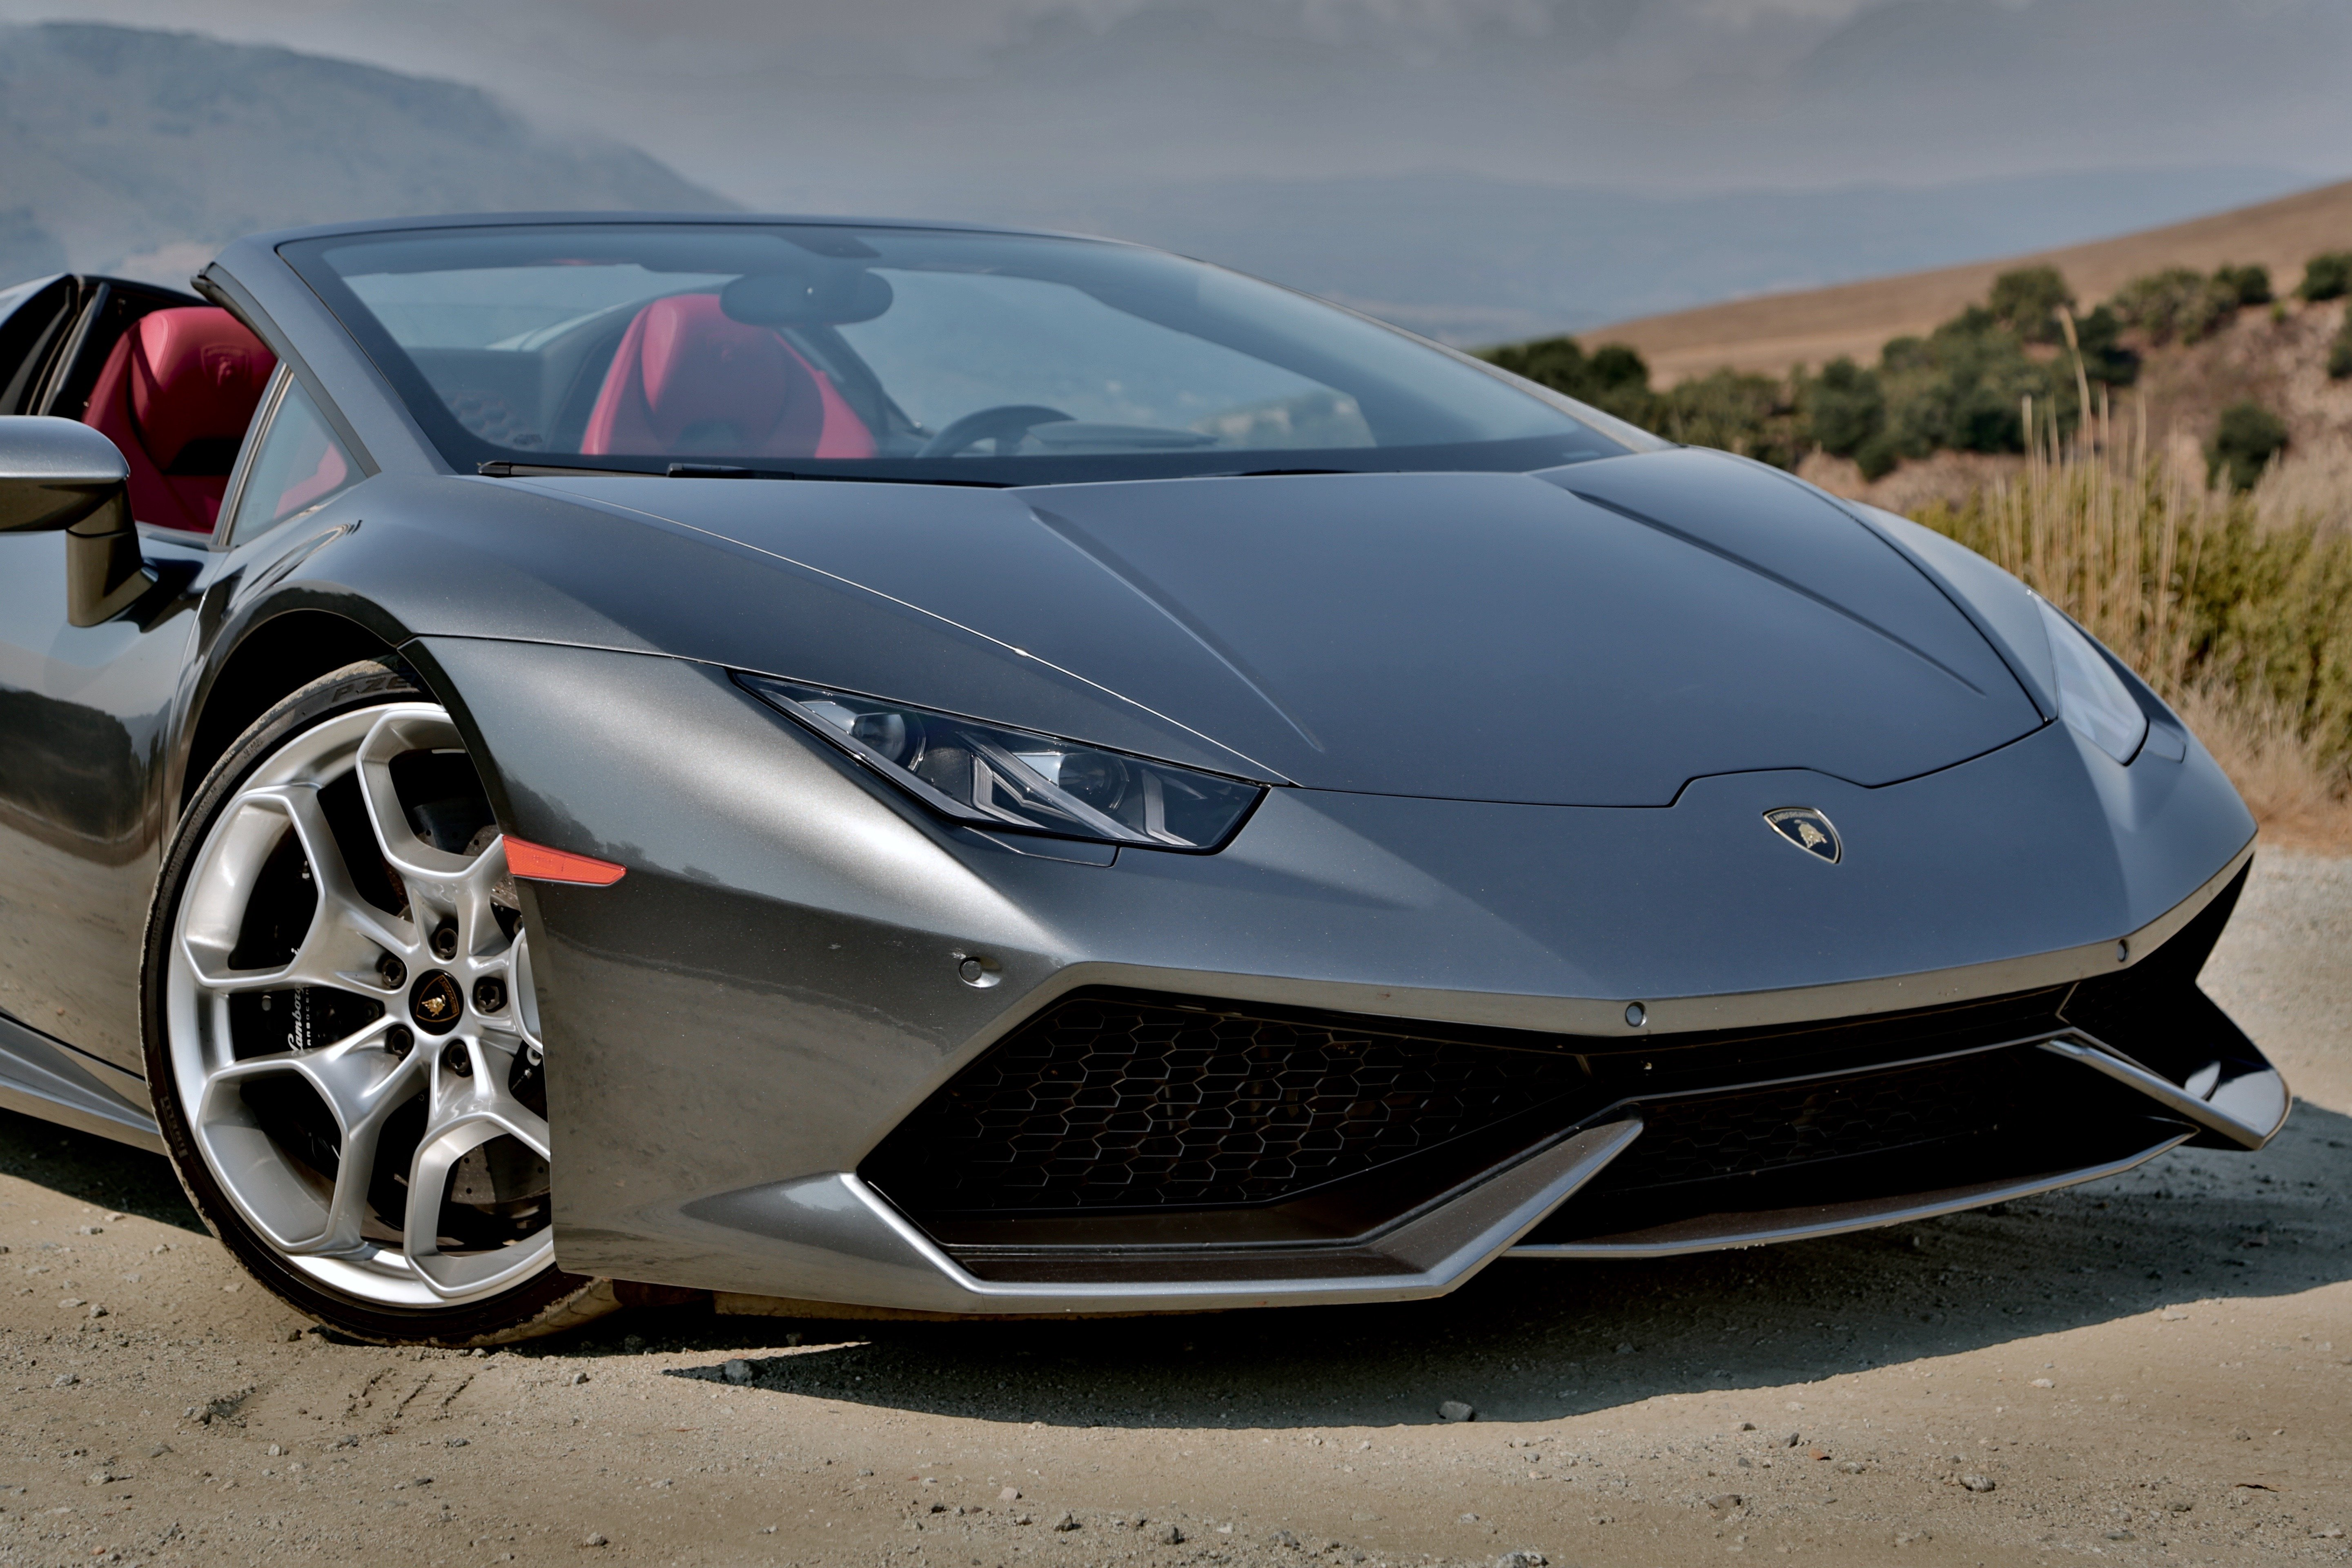 Lamborghini Huracan LP580-2 Spyder cabriolet specifications